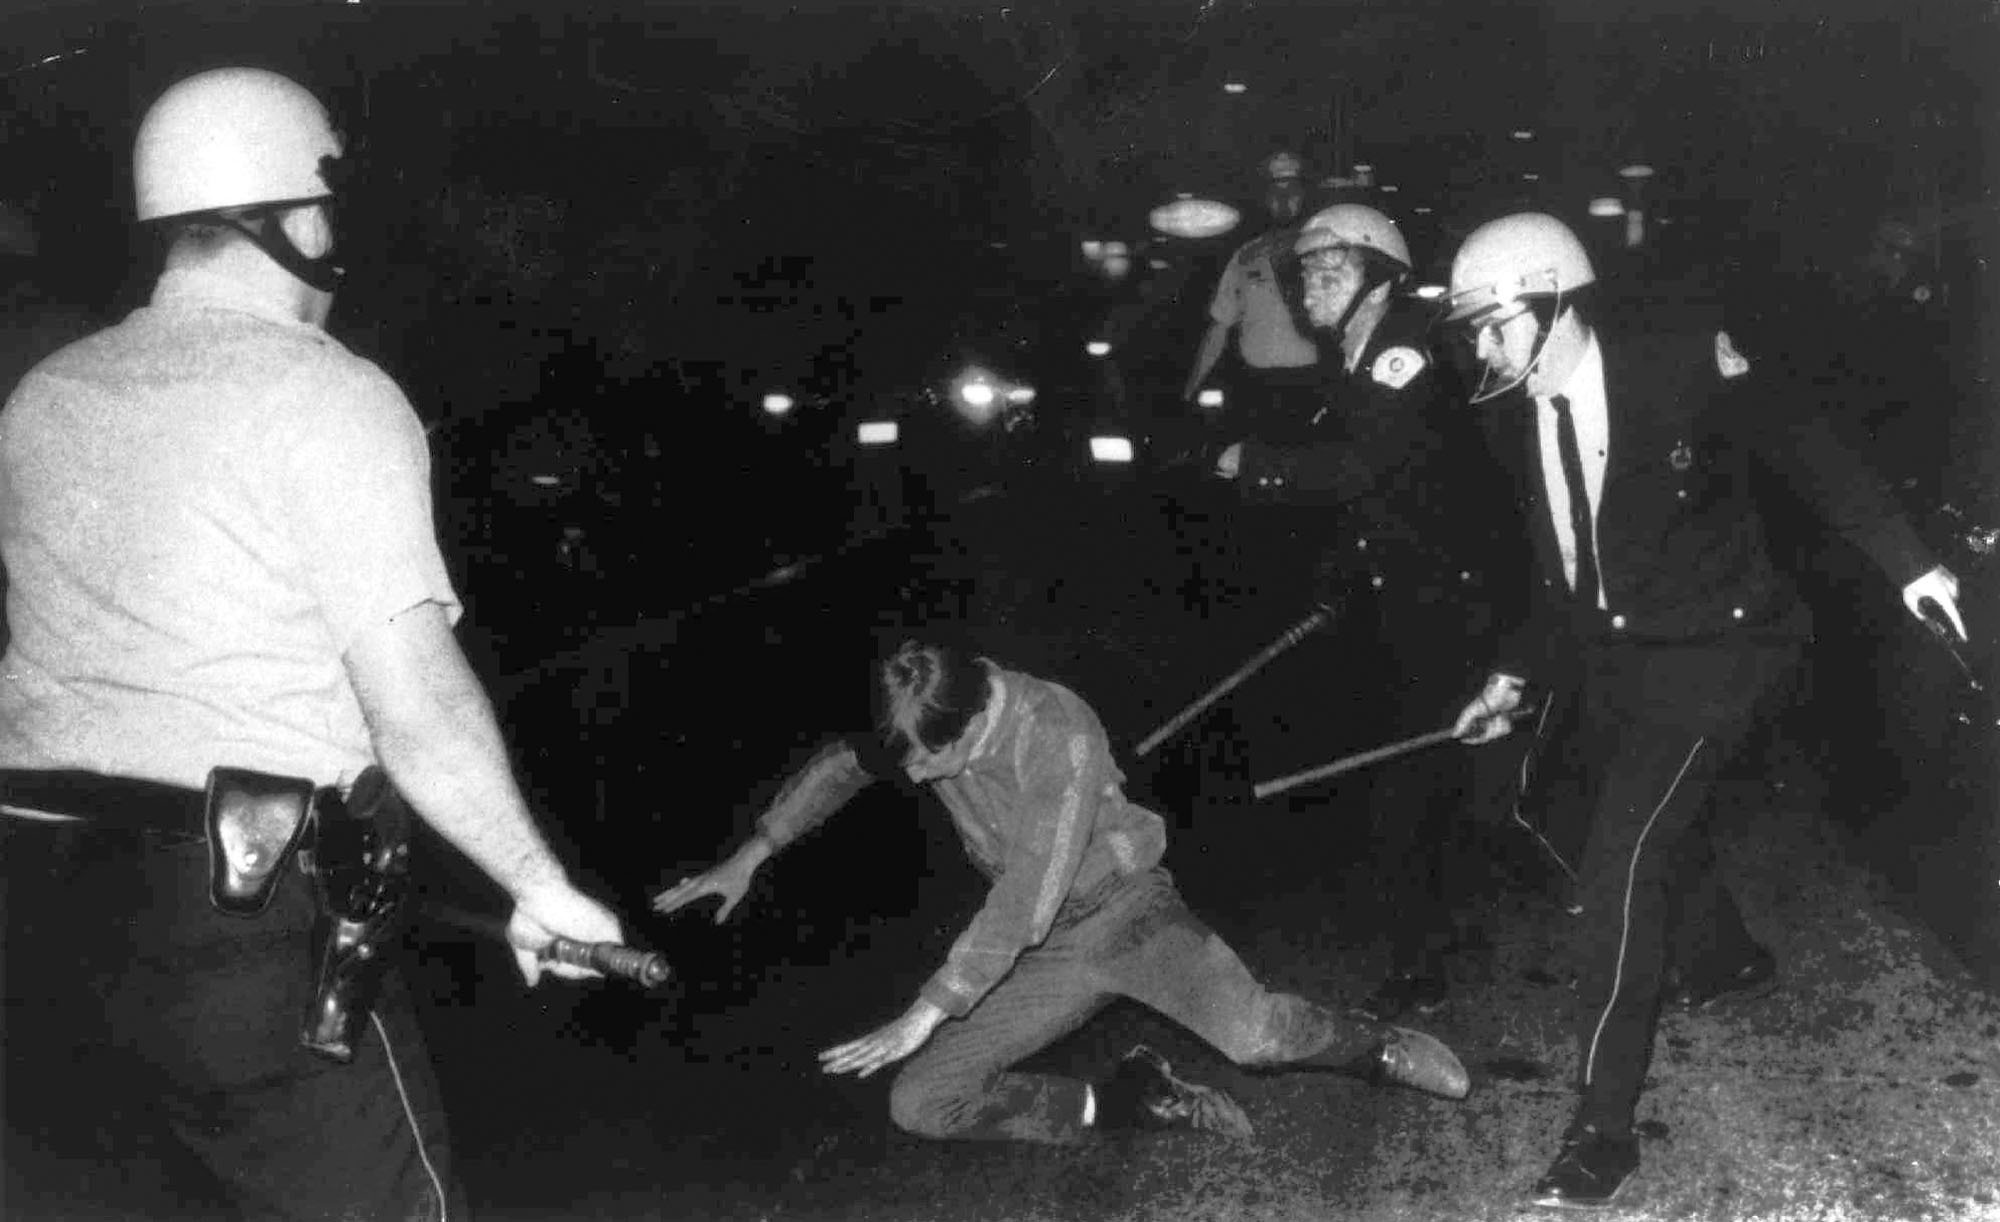 An Aug. 27, 1968 photo shows a demonstrator falling to the ground as he is pursued by Chicago Police officers during the Democratic National Convention in Chicago.